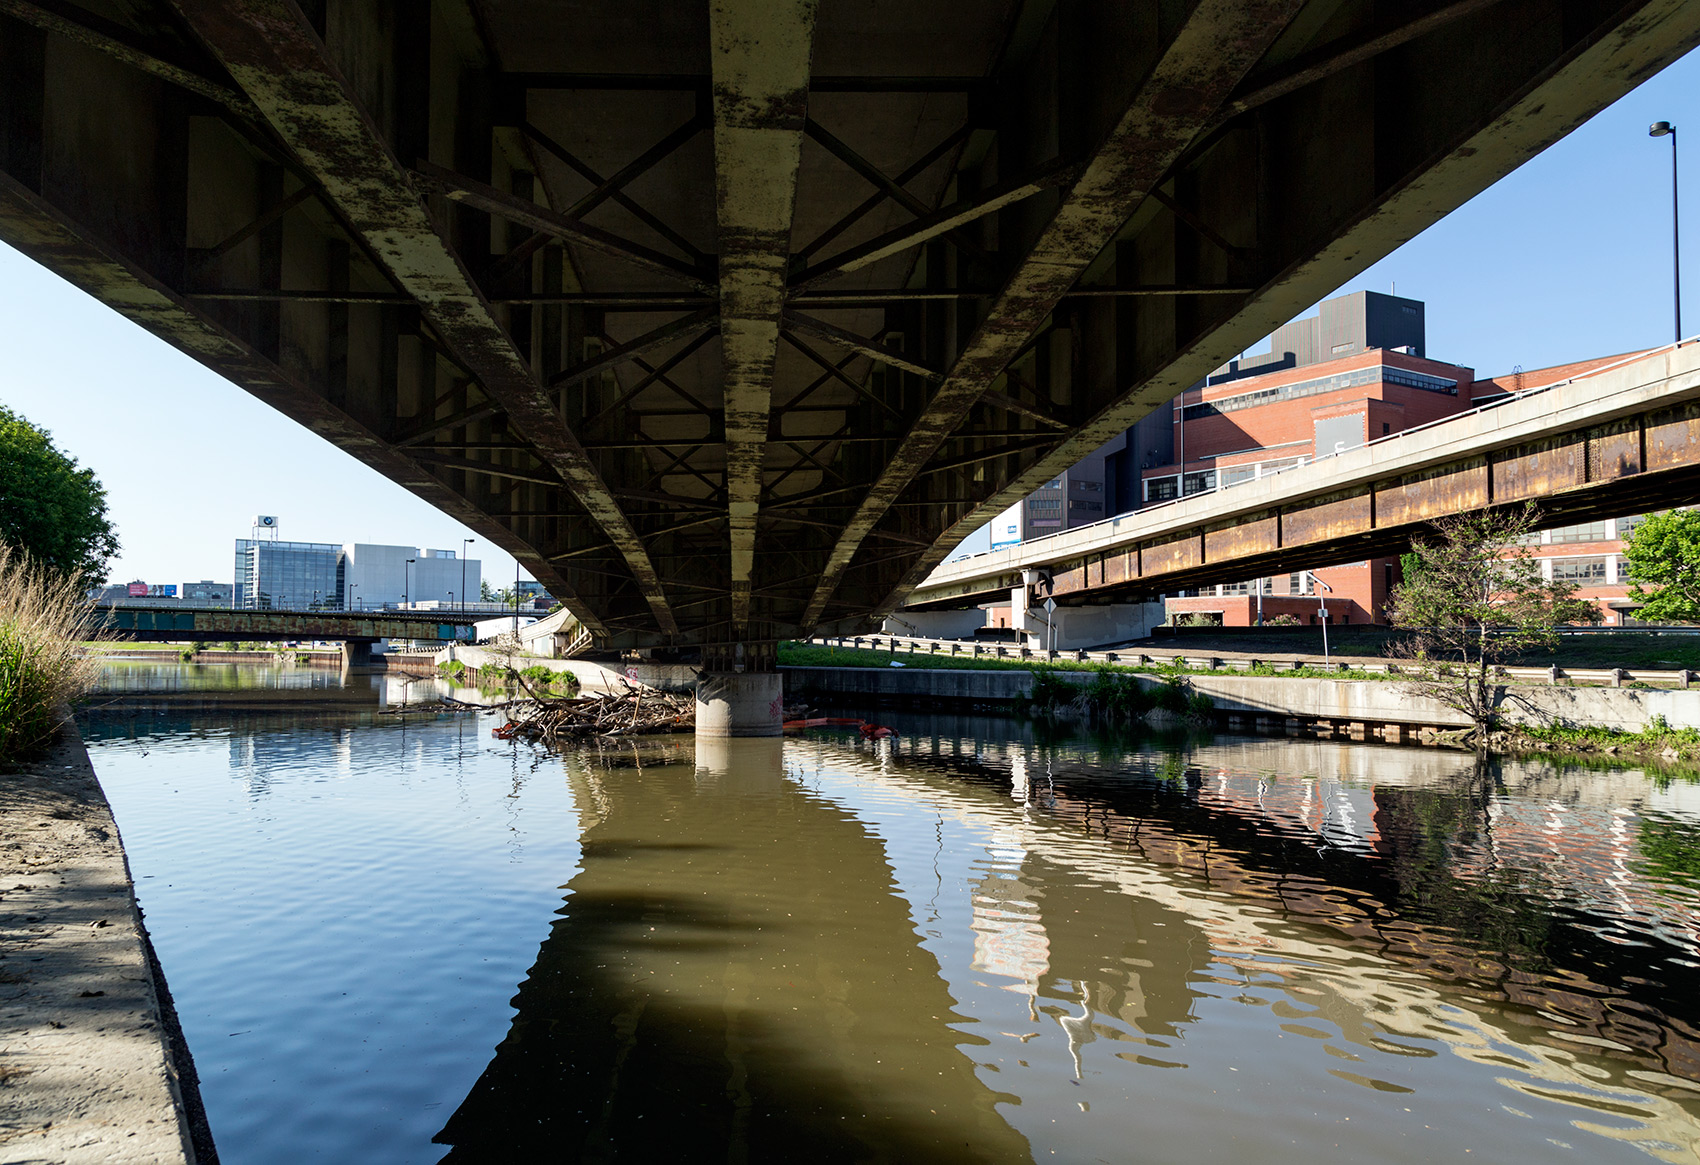 20150605. Imagine a naturalized Don River beneath the @GardinerE